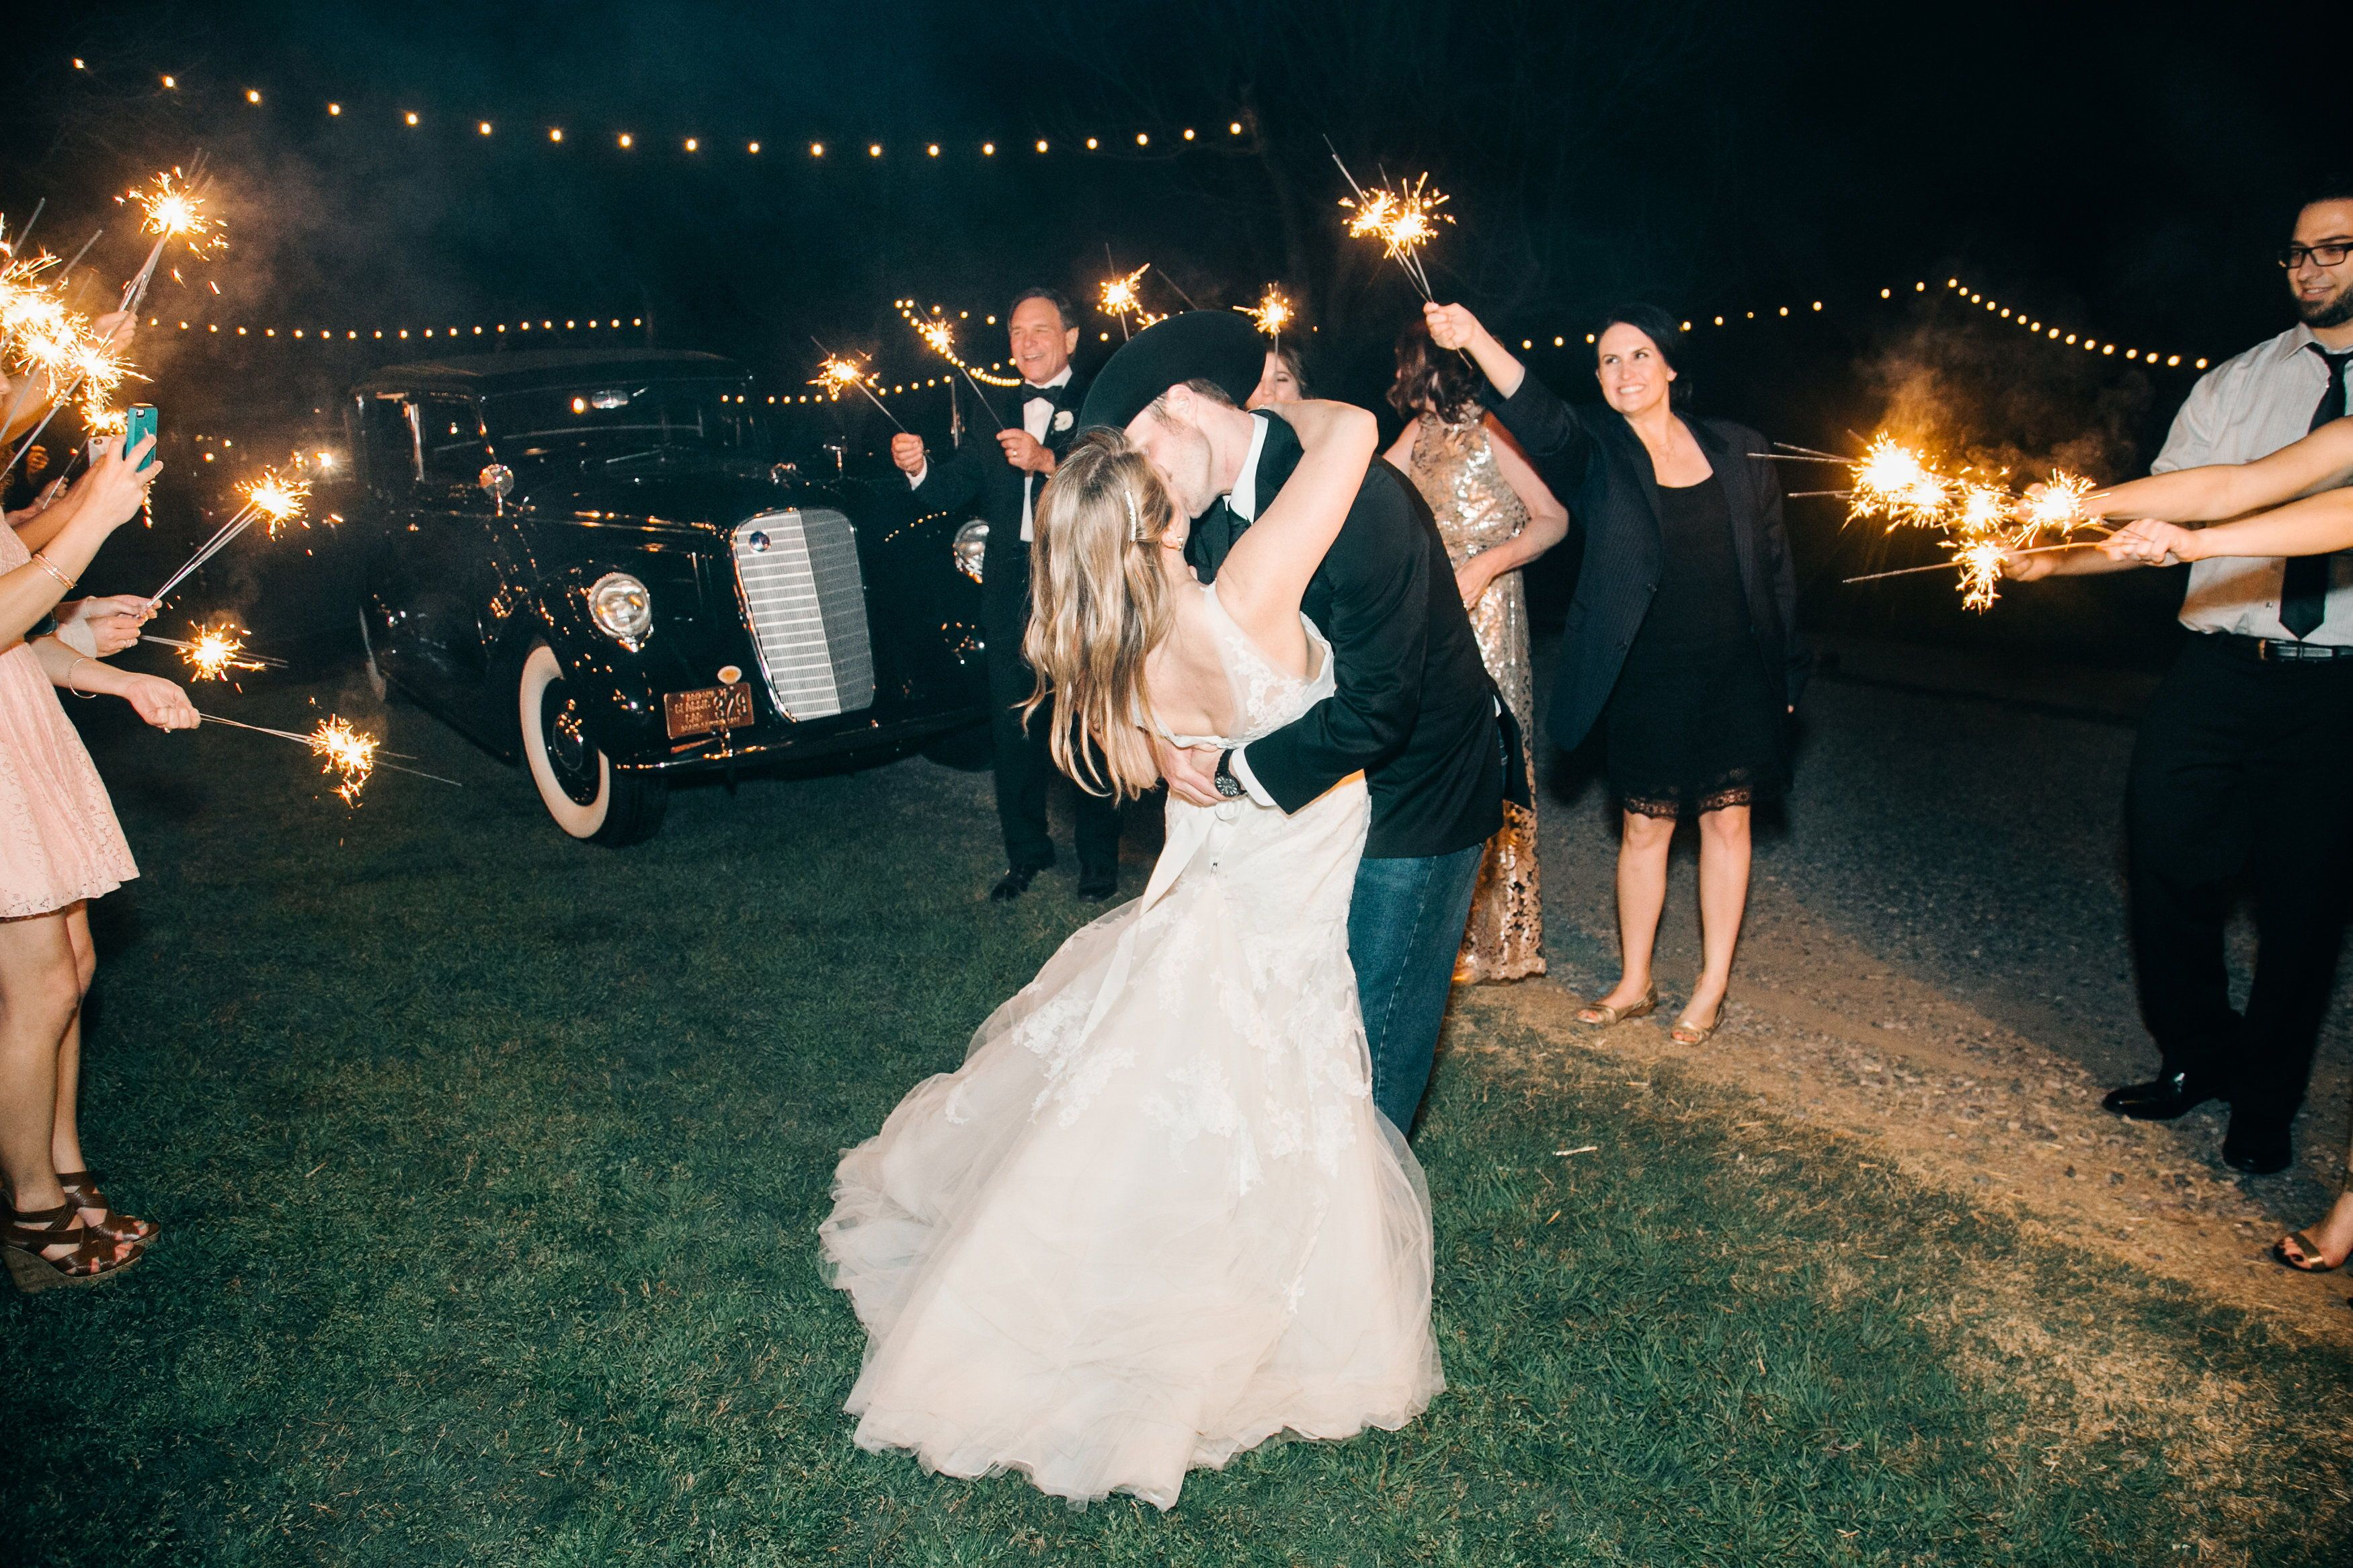 Kissing Couple With A Wedding Sparkler Exit By A Fancy Getaway Car Sparkler Exit Wedding Wedding Sparklers Sparklers